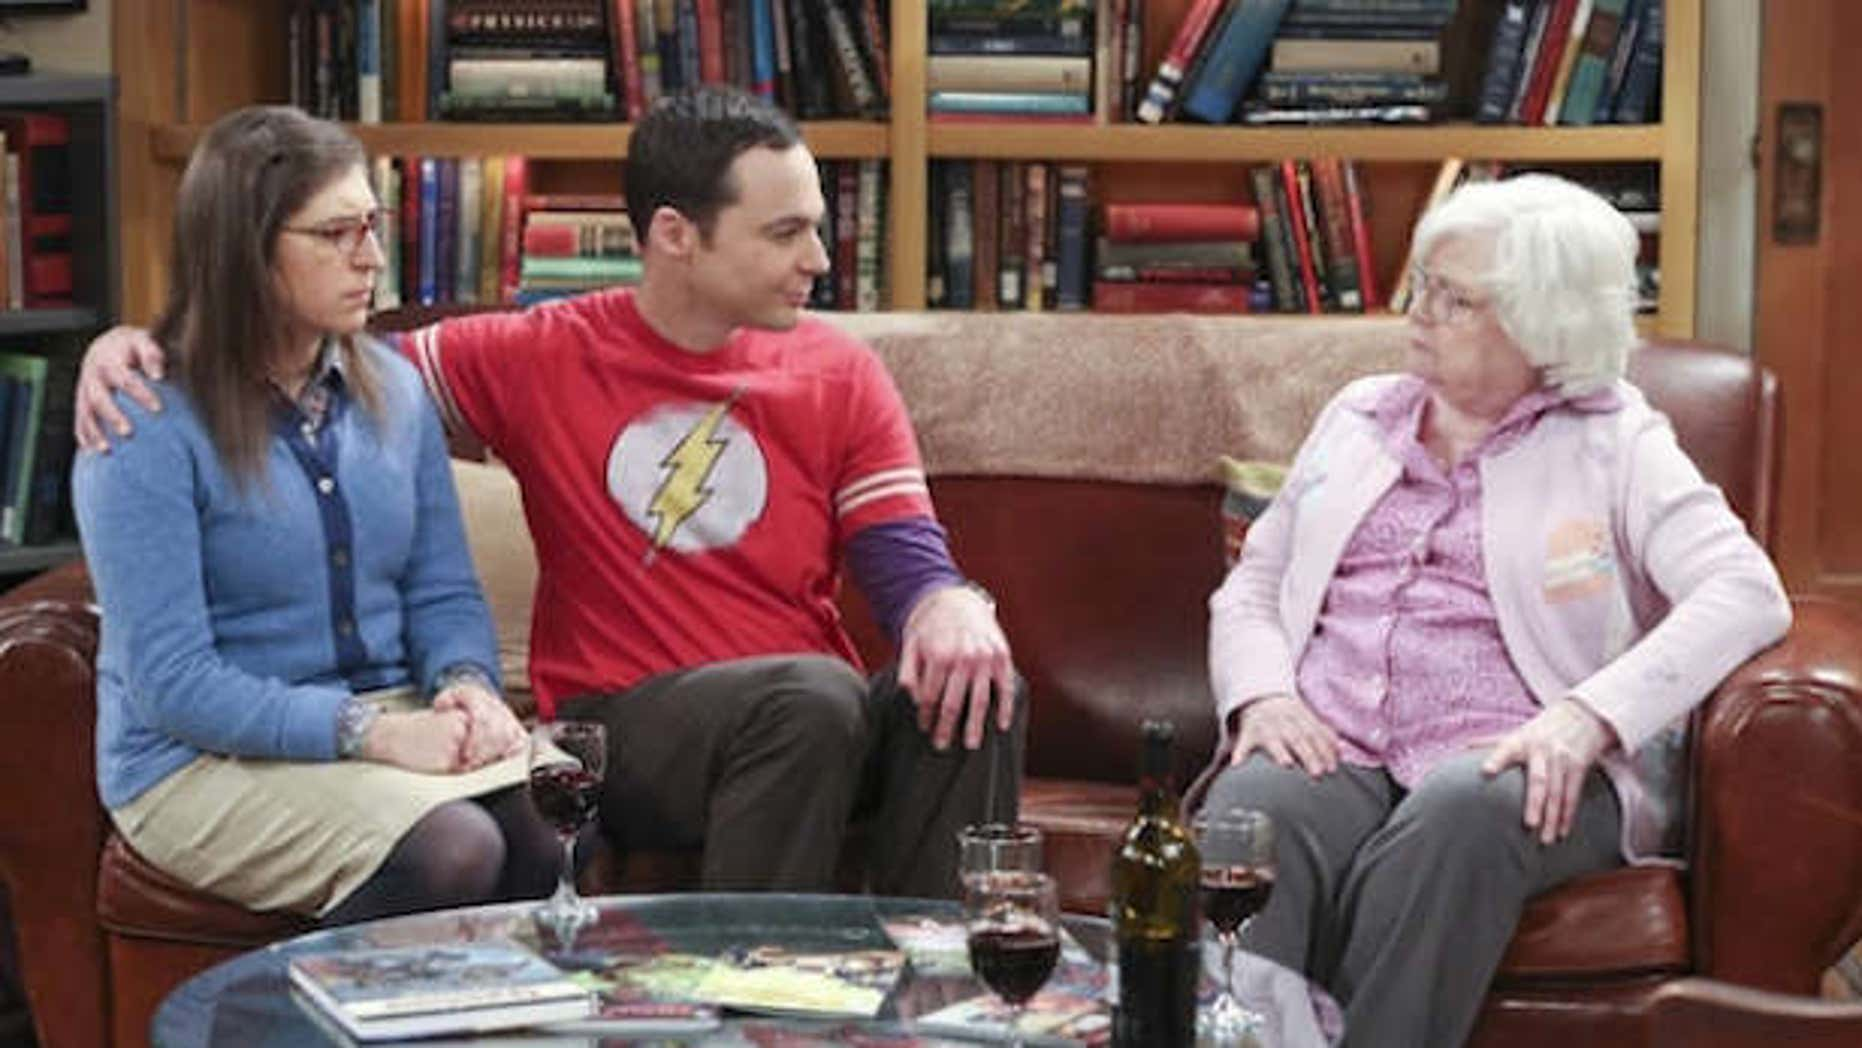 Sheldon (Jim Parsons) and Amy (Mayim Bialik) tussle with Meemaw (June Squibb).